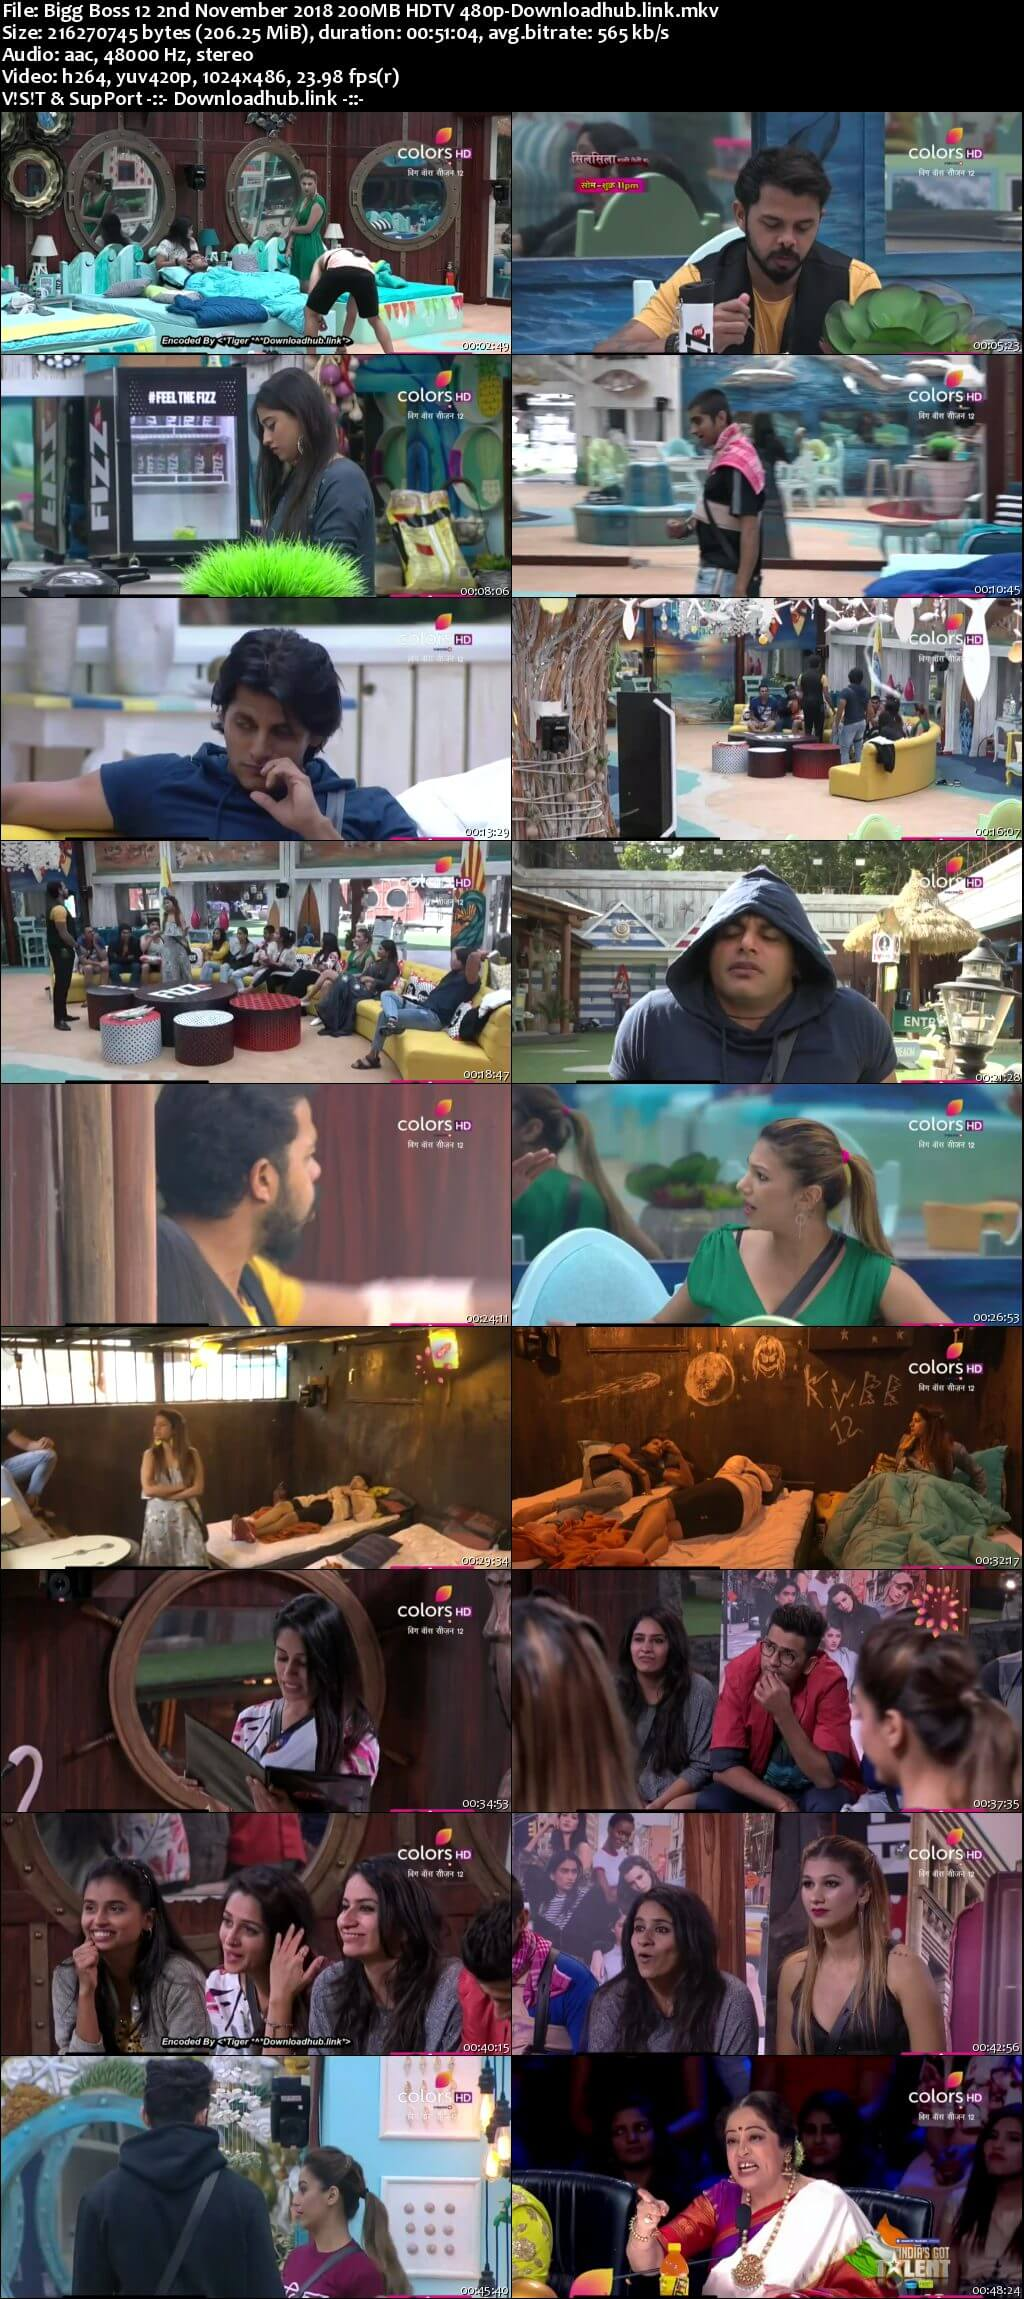 Bigg Boss 12 02 November 2018 Episode 47 HDTV 480p